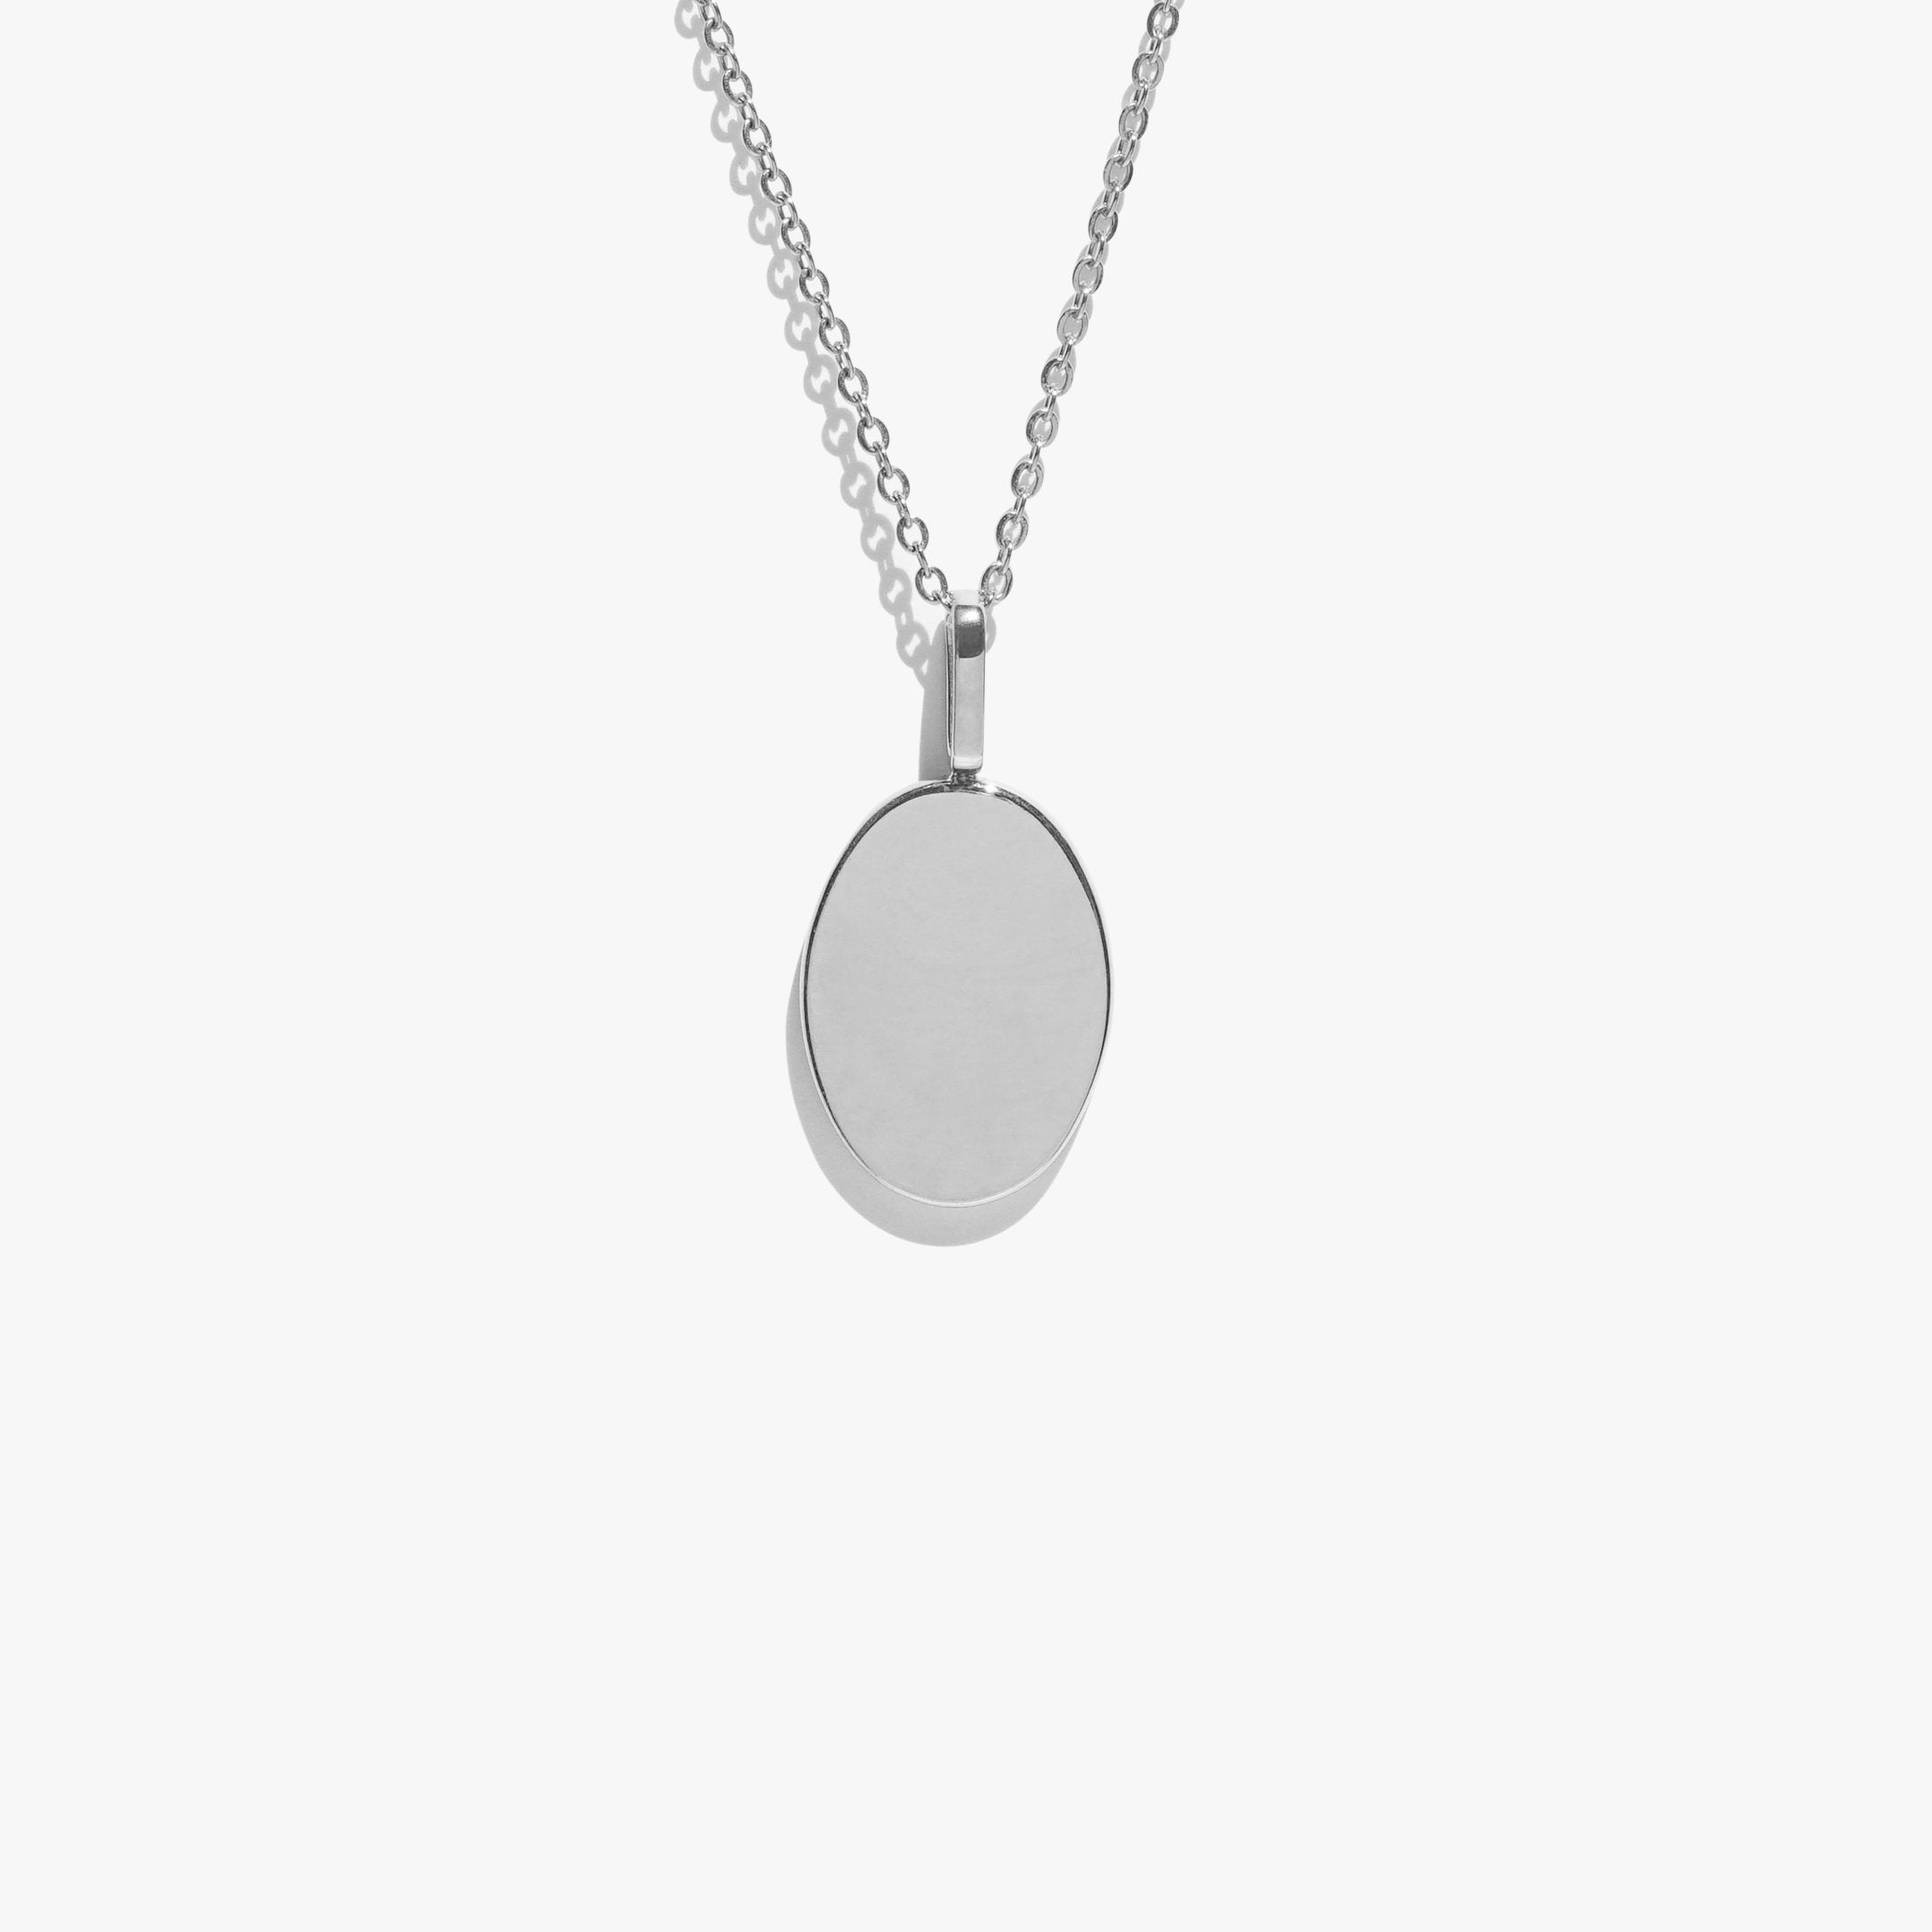 Oval Pendant - Silver